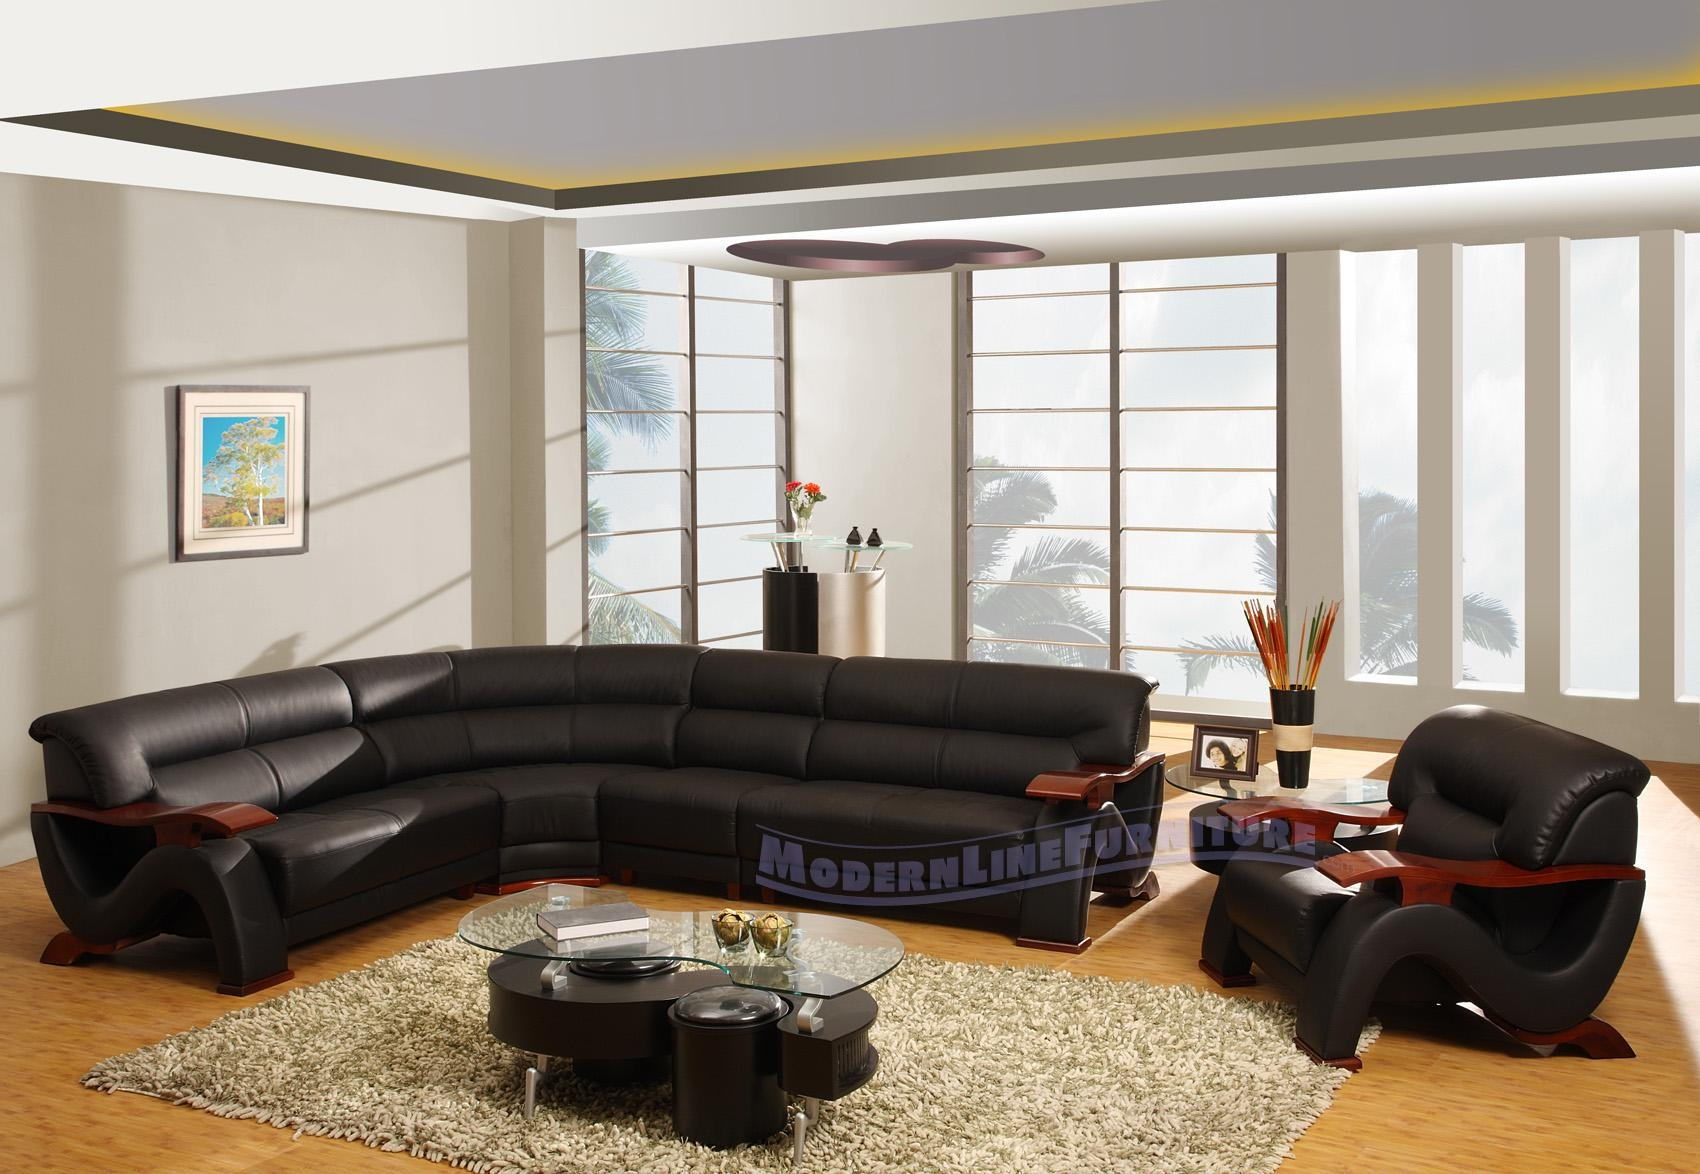 Modern Line Furniture – Commercial Furniture – Custom Made In Coffee Table For Sectional Sofa (View 11 of 15)